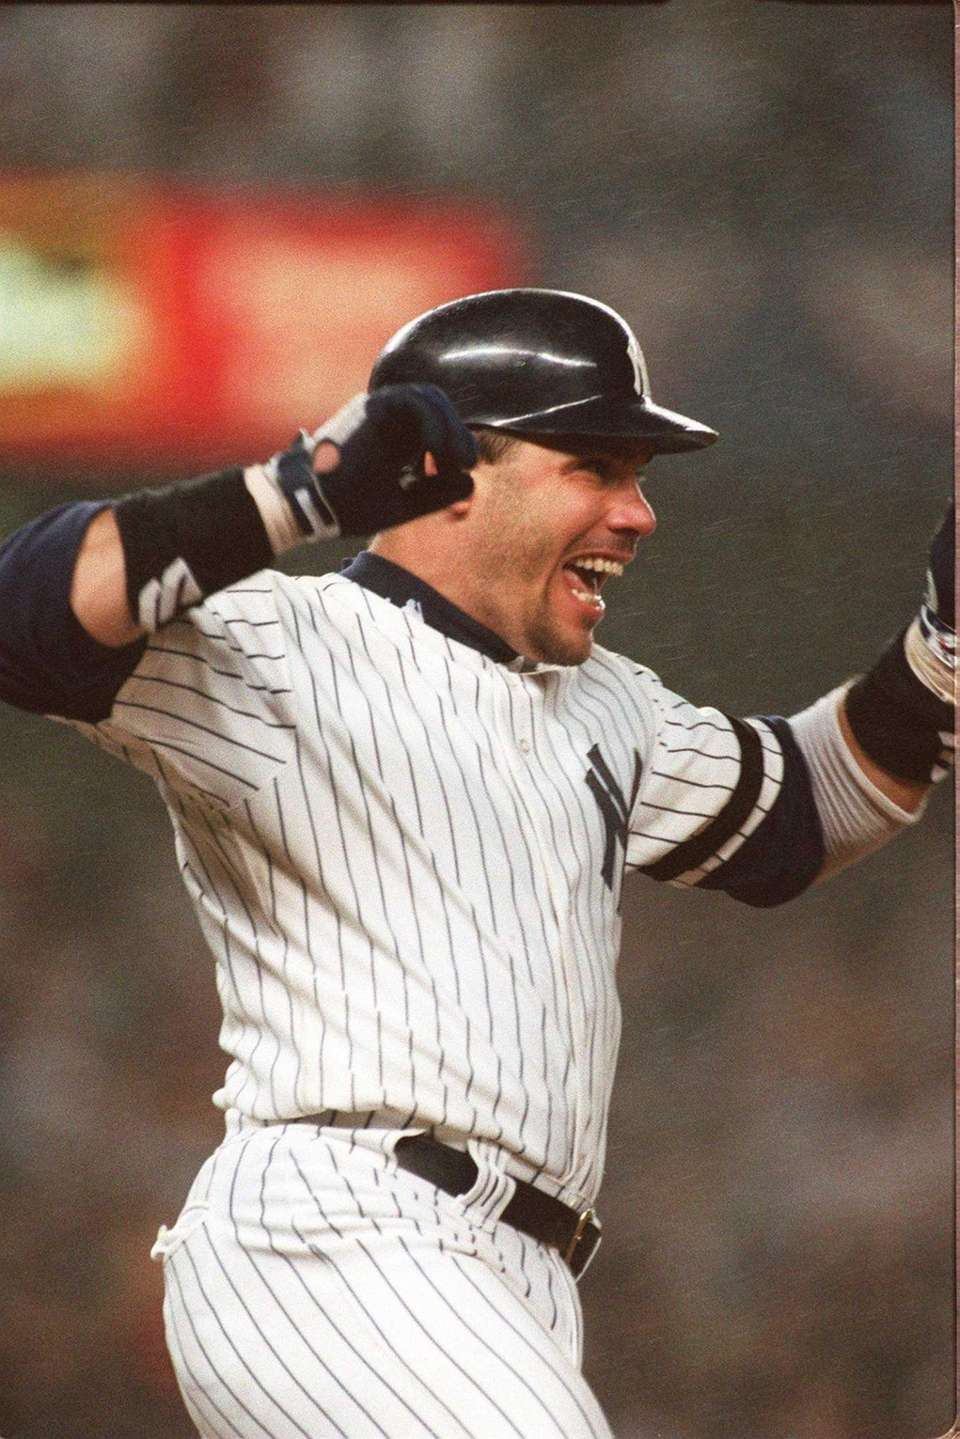 23. JIMMY LEYRITZ IN THE 15TH -- Oct.